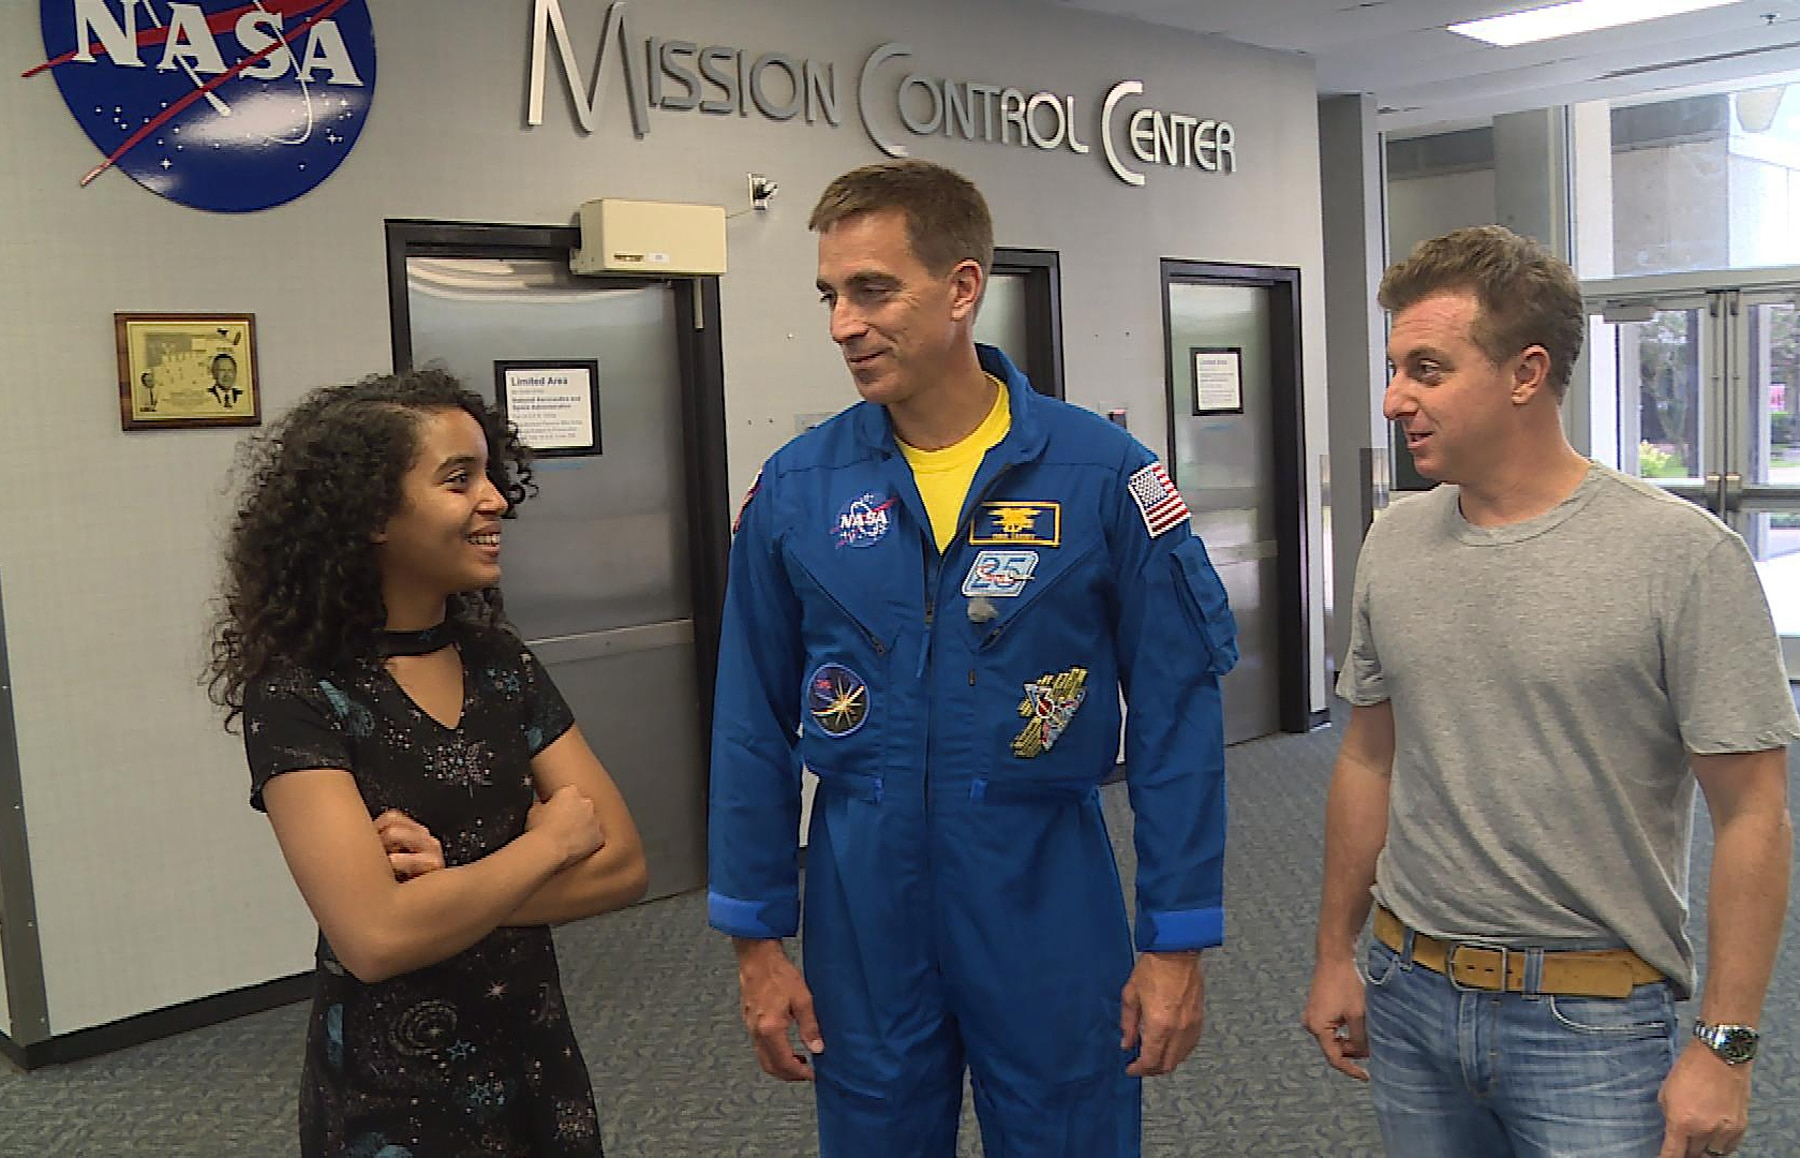 Young girl talking with astronaut and another man (Globo)